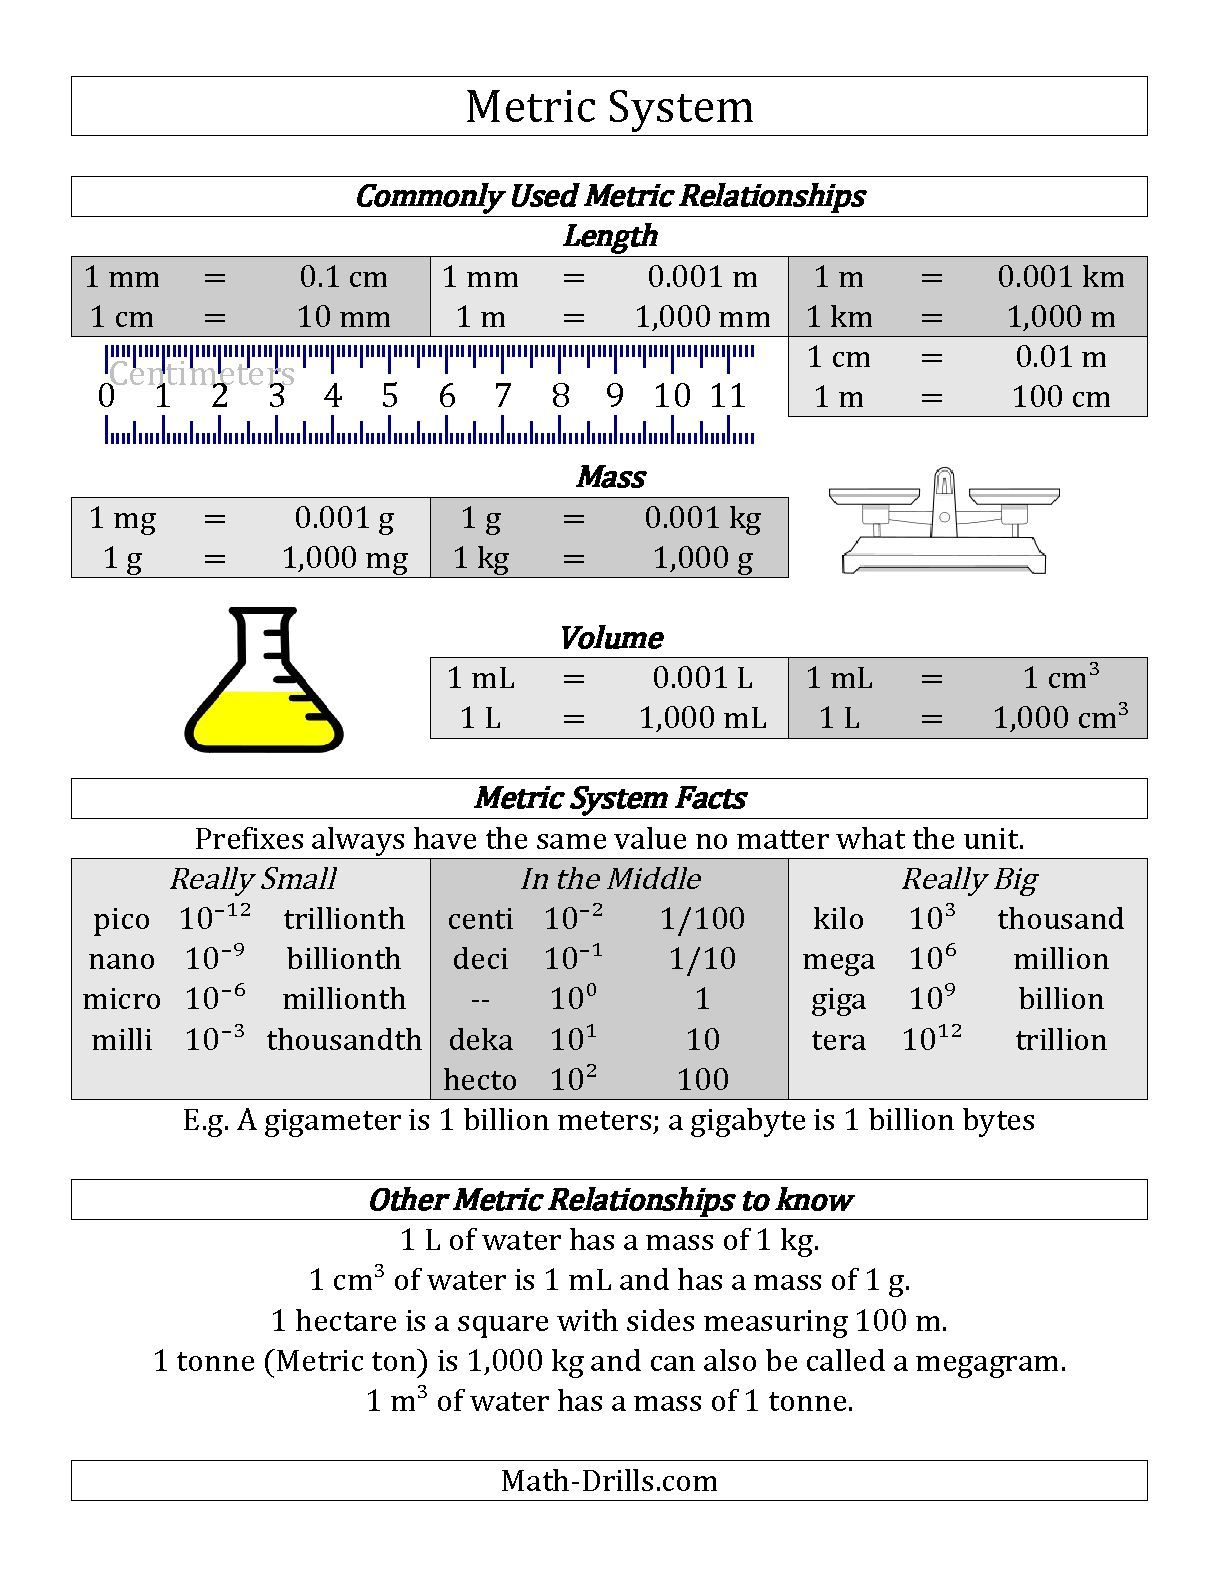 metric system conversion guide a math worksheet freemath biology pinterest metric. Black Bedroom Furniture Sets. Home Design Ideas